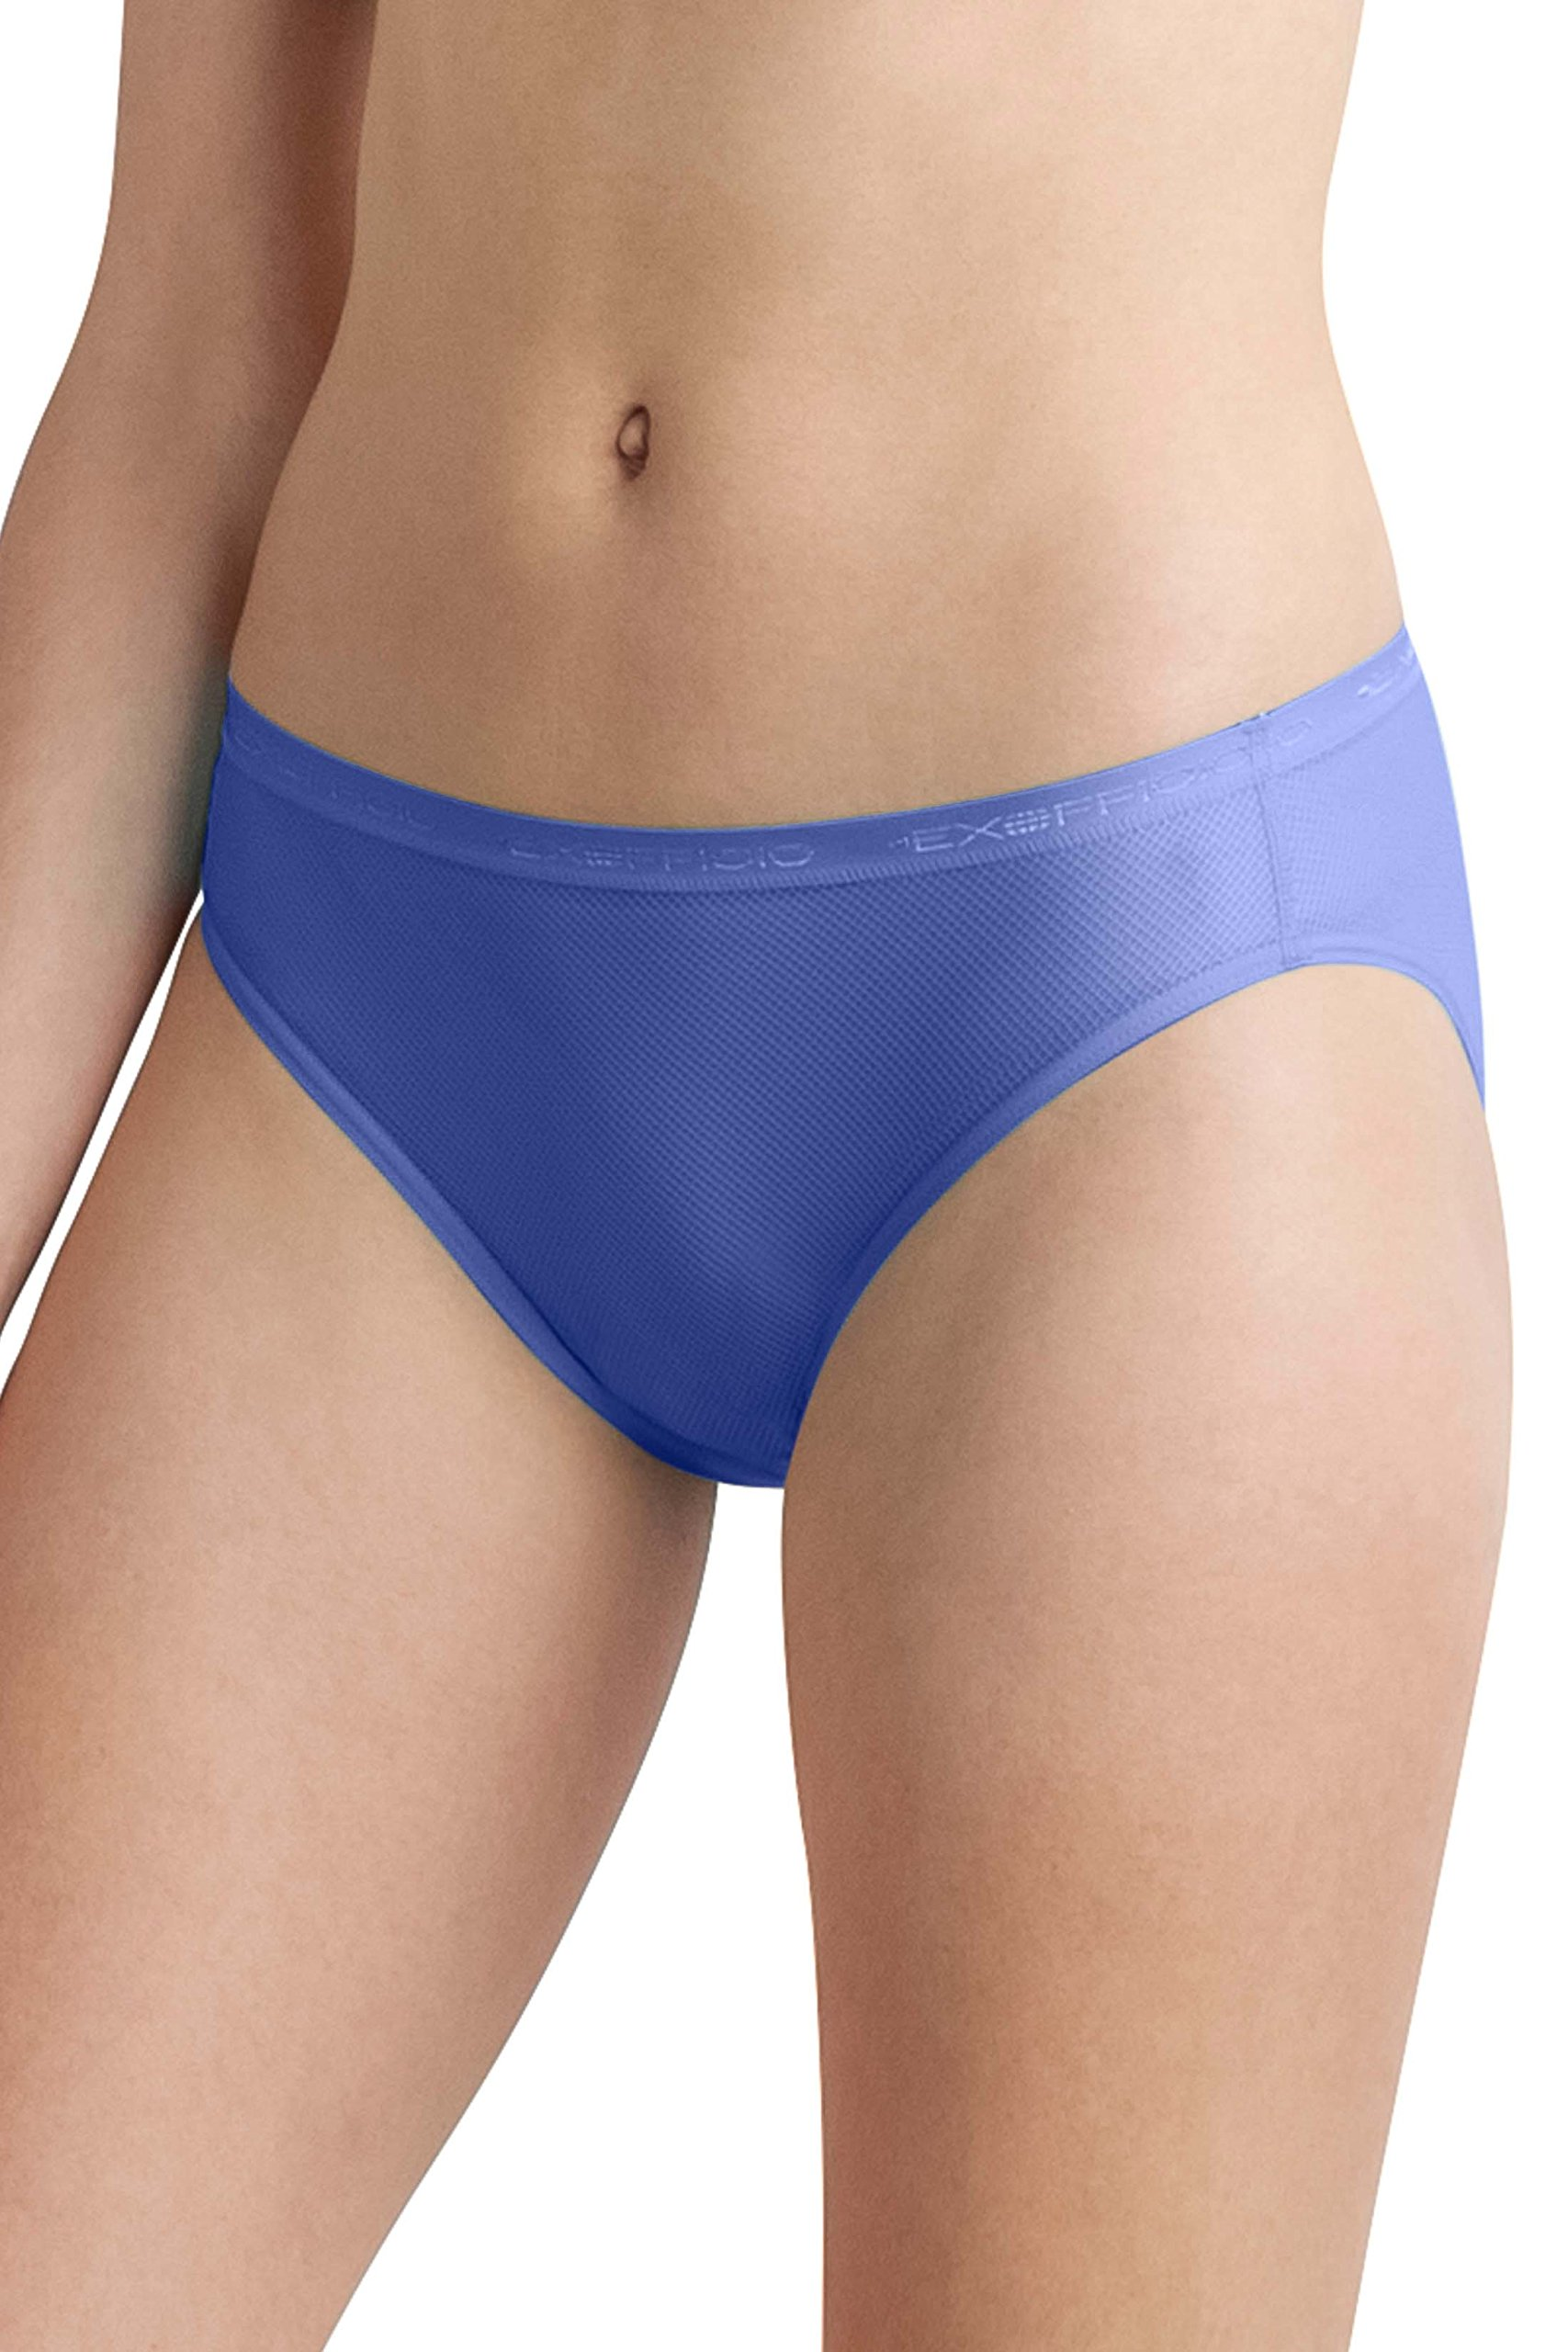 ExOfficio Give n go Bikini Brief